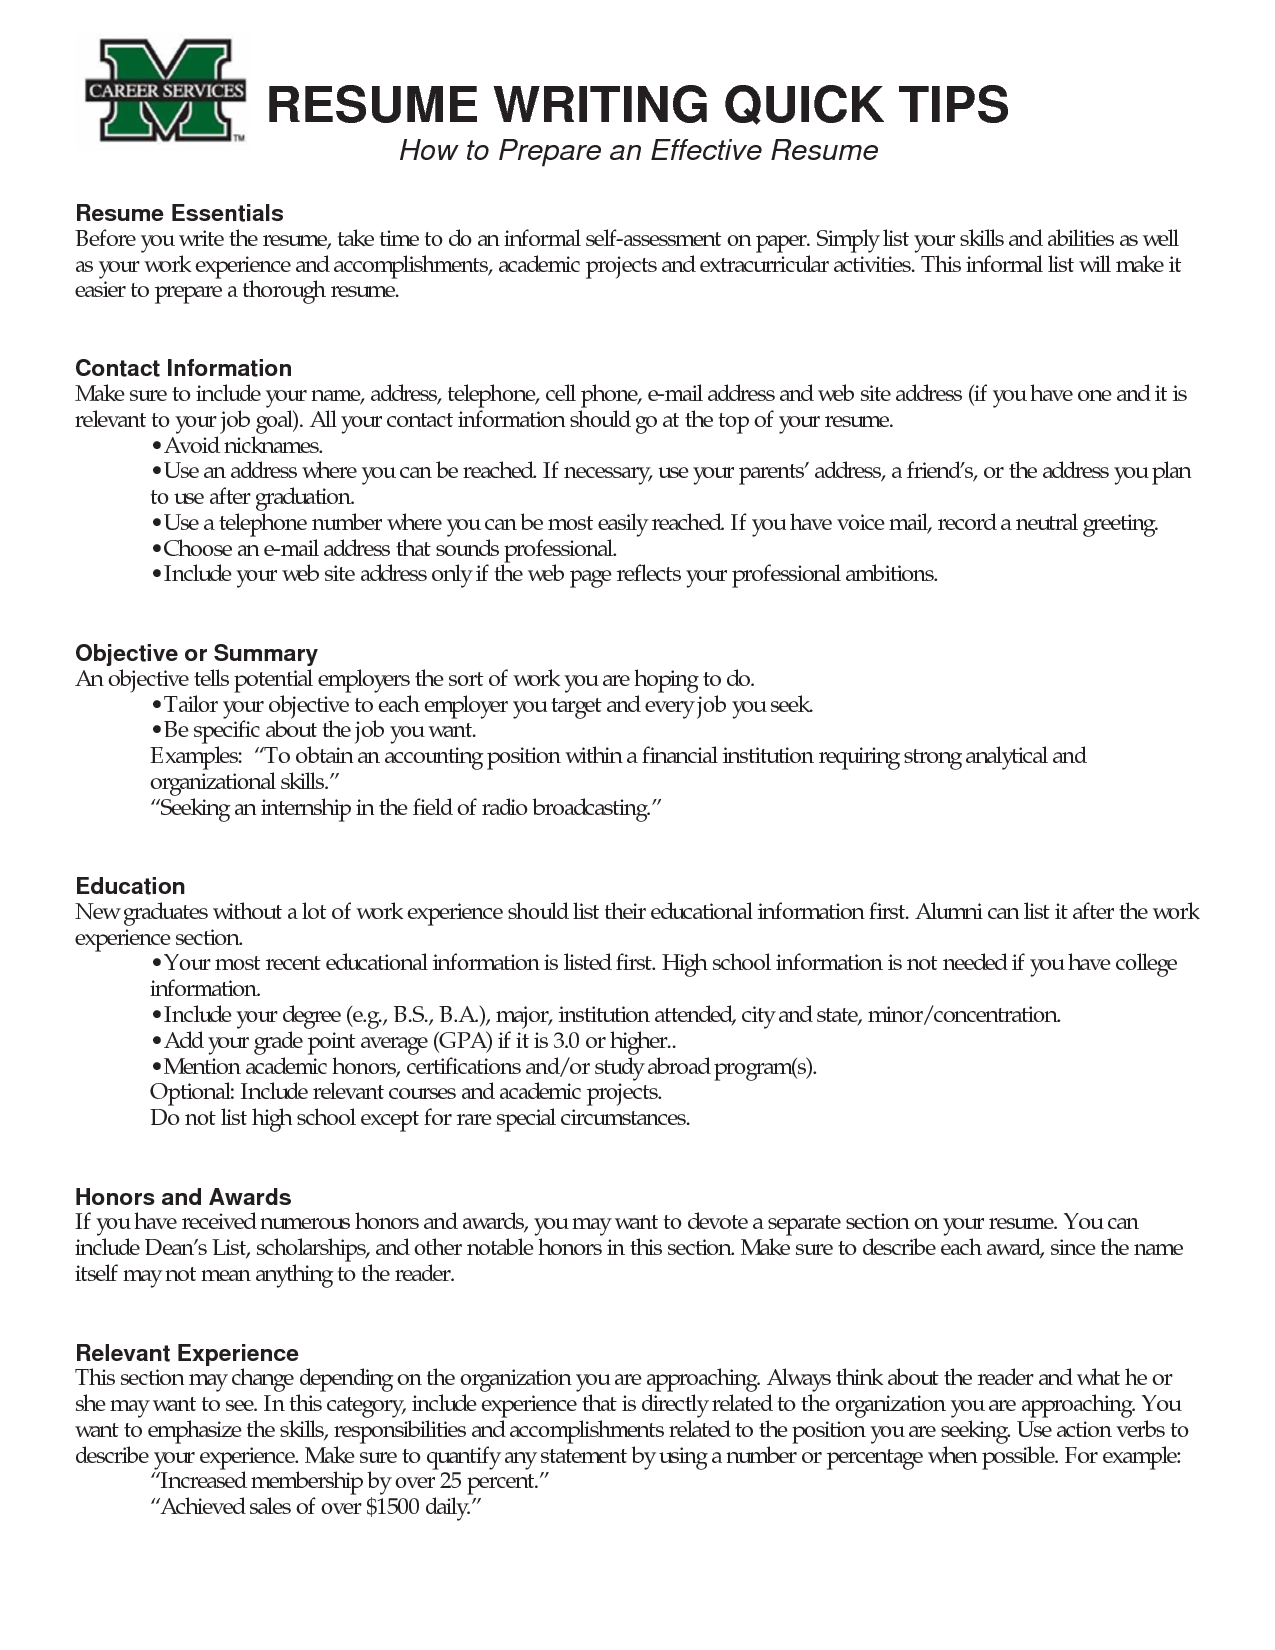 How To Make An Effective Resumes Ukrandiffusion